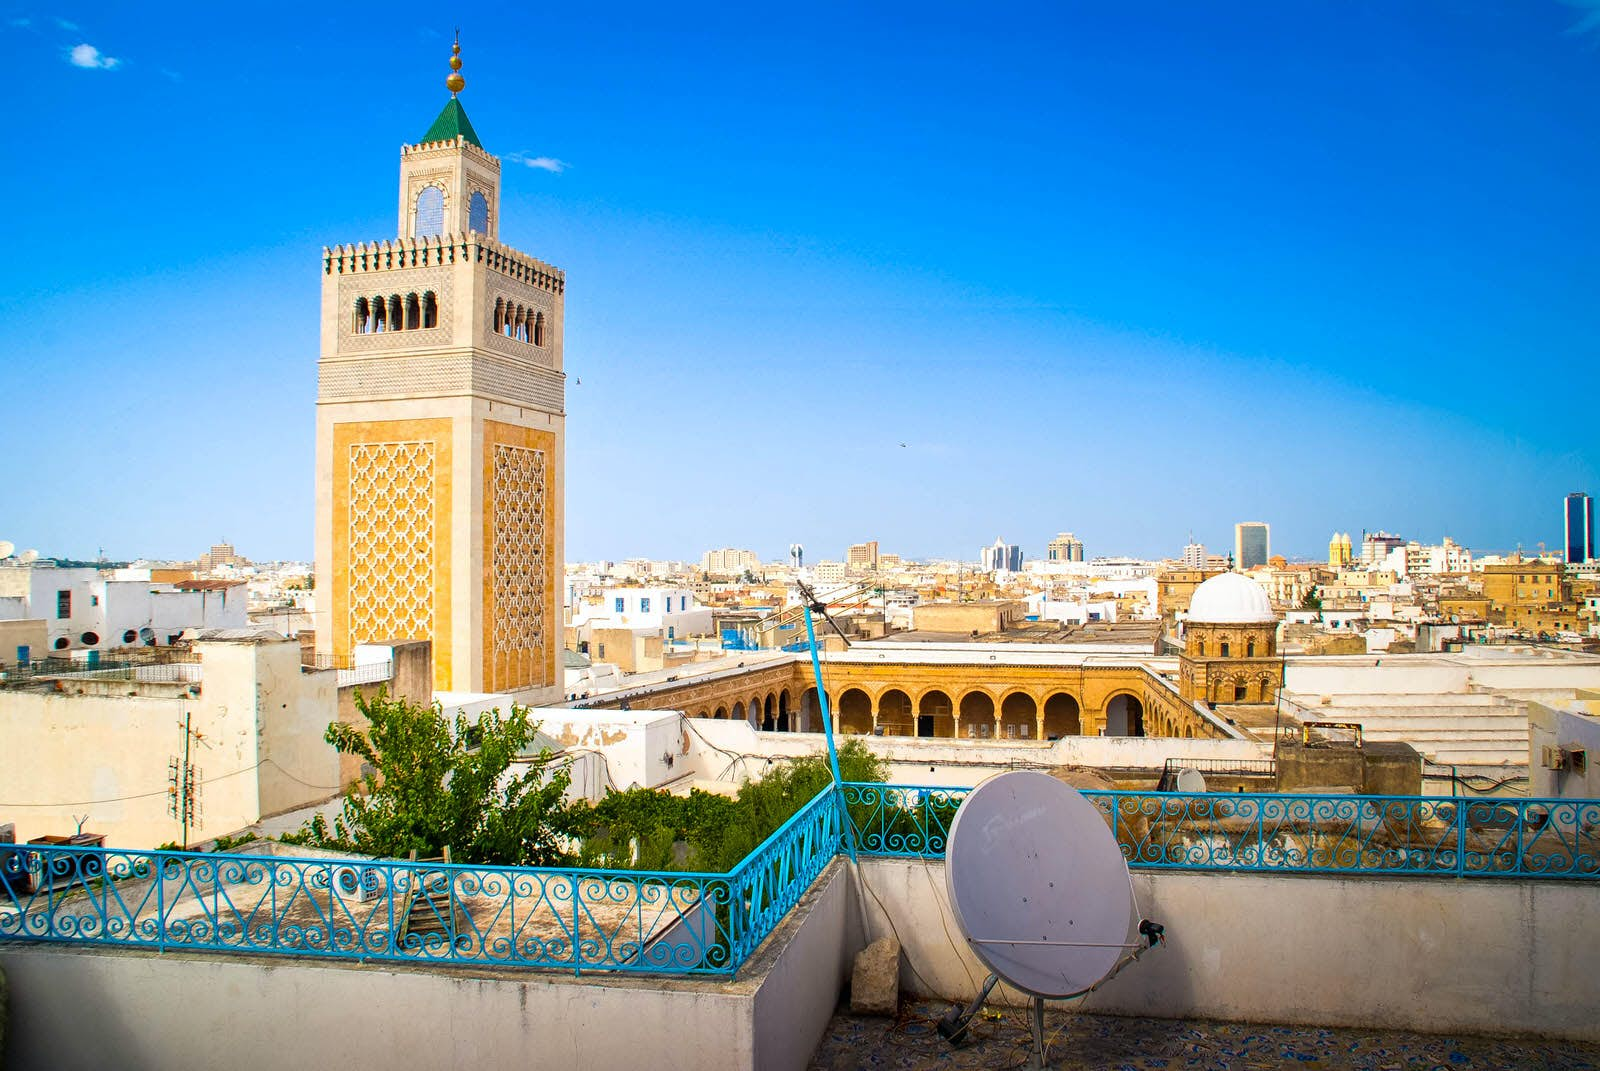 La Chambre Bleu Tunis Medina Meanders Exploring The Old Walled City In The Heart